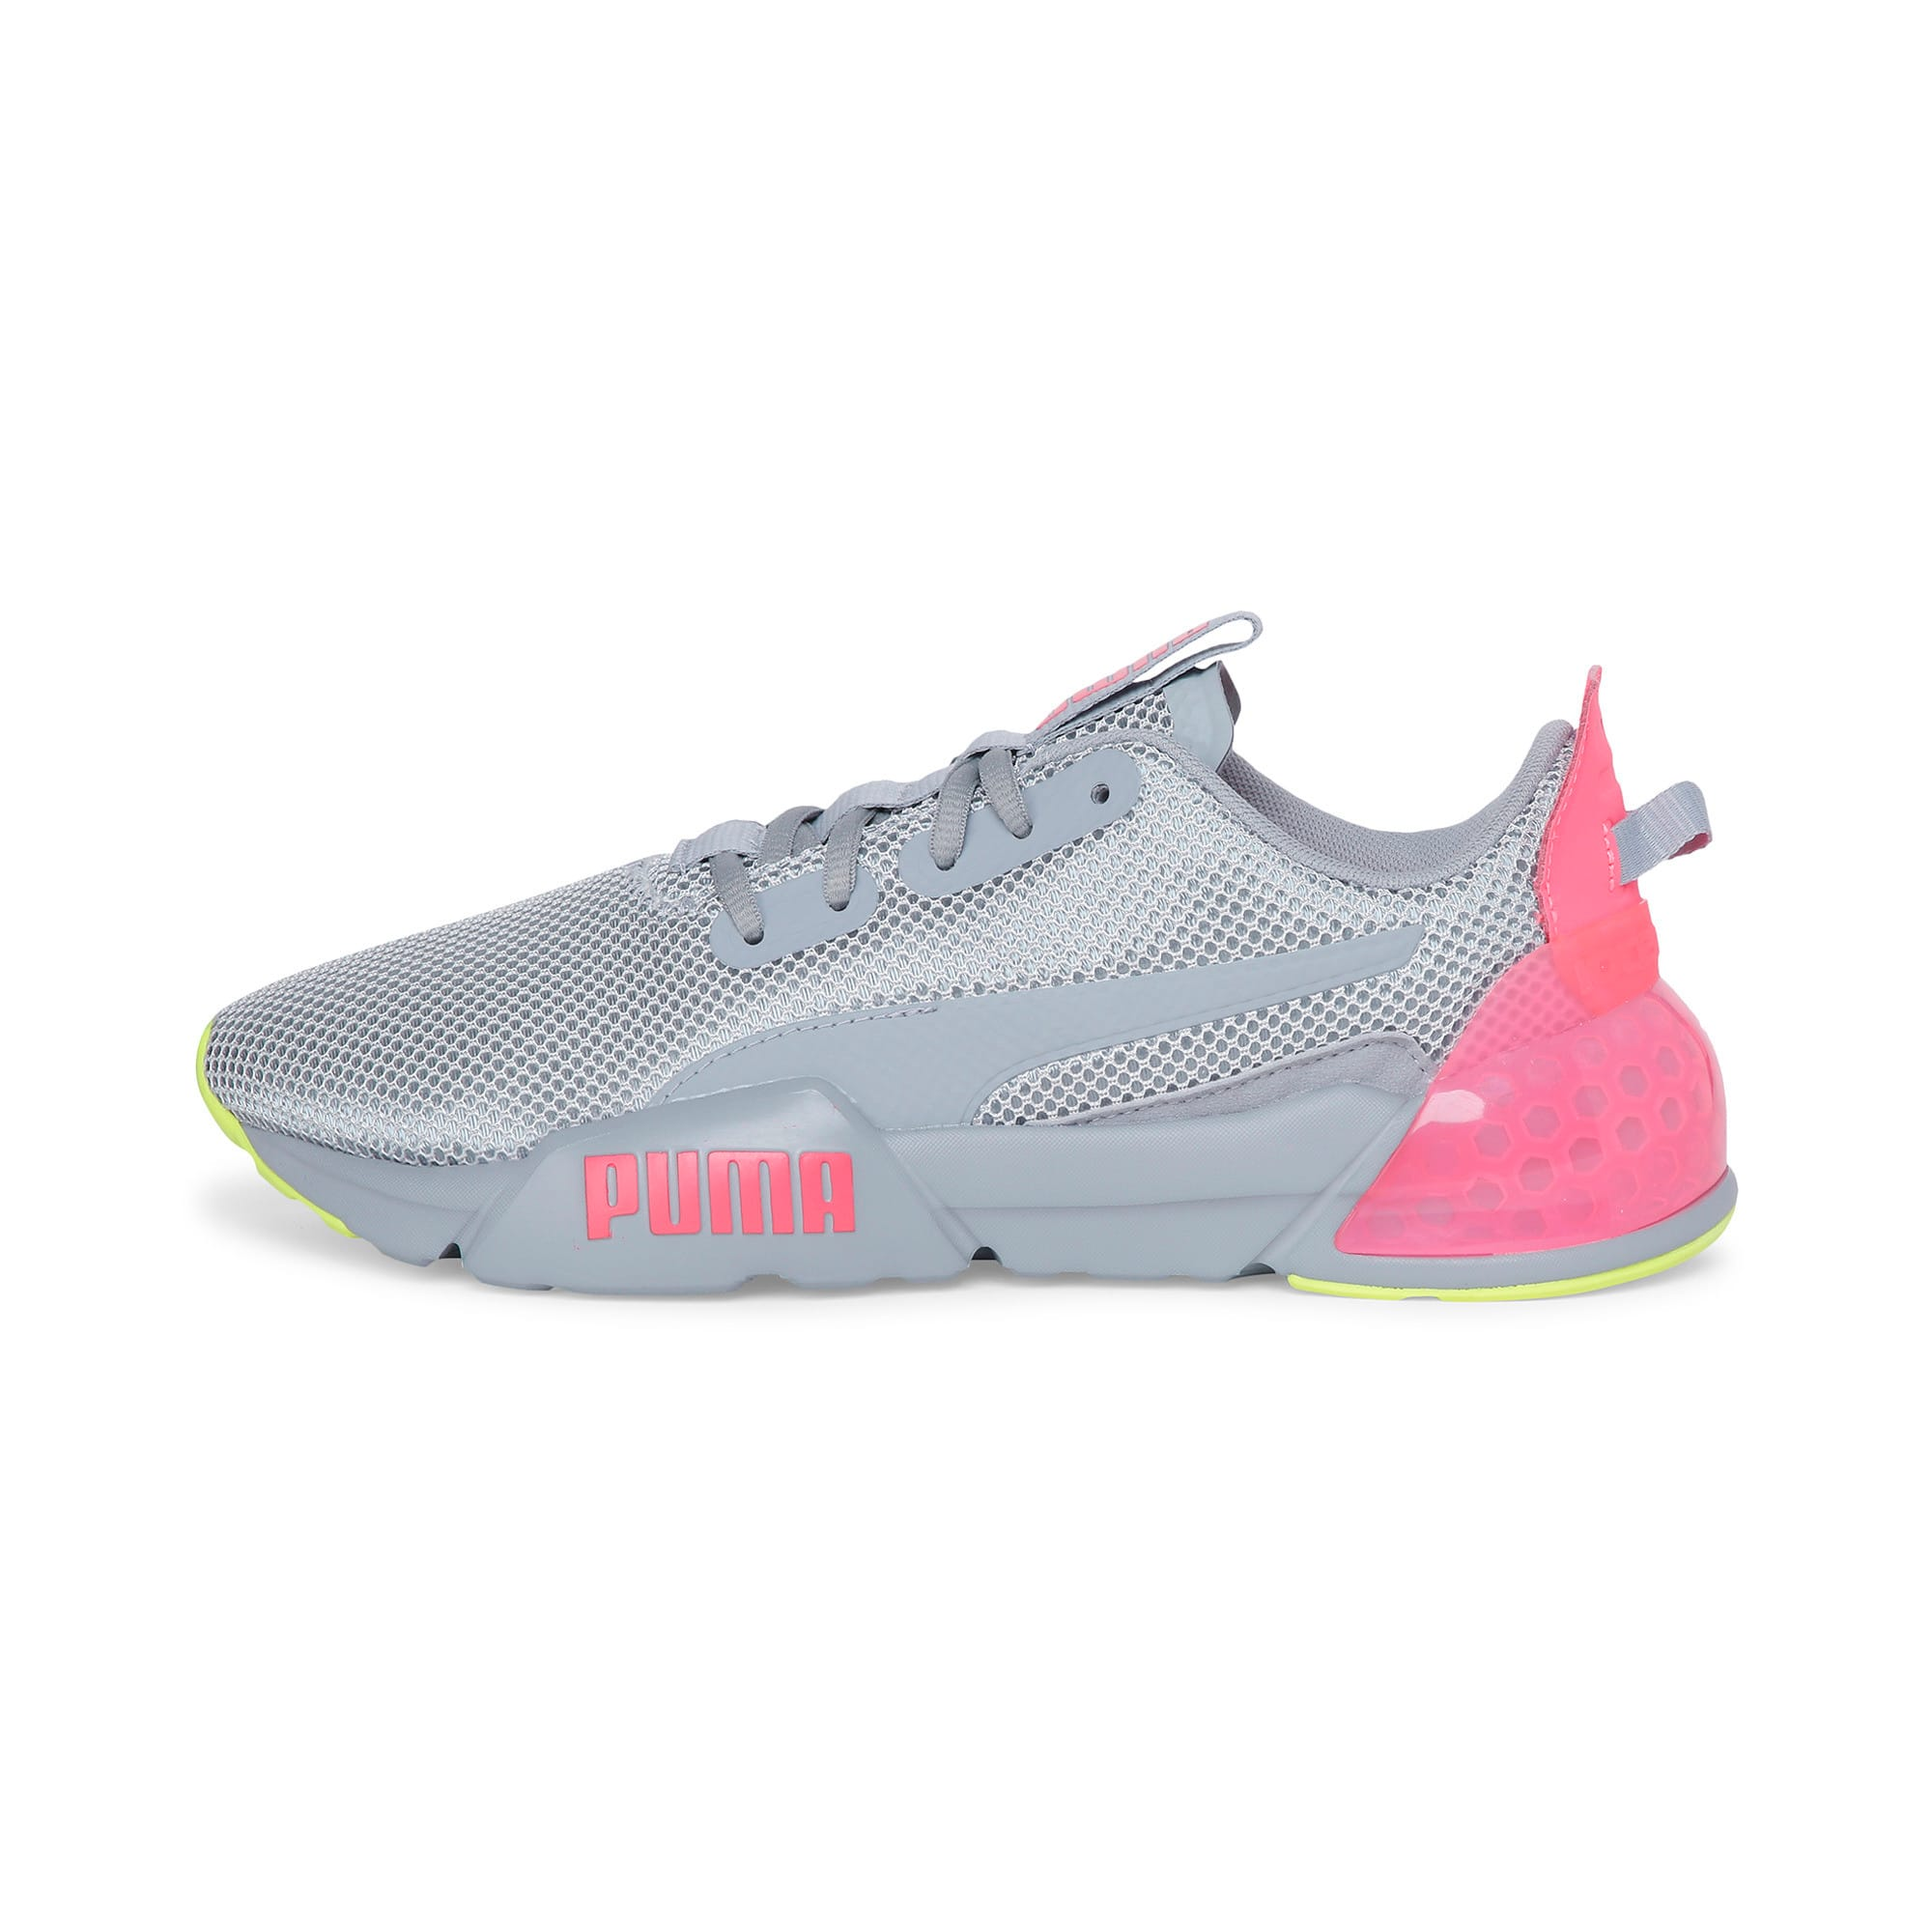 Thumbnail 1 of CELL Phase Women's Trainers, Quarry-Pink Alert, medium-IND